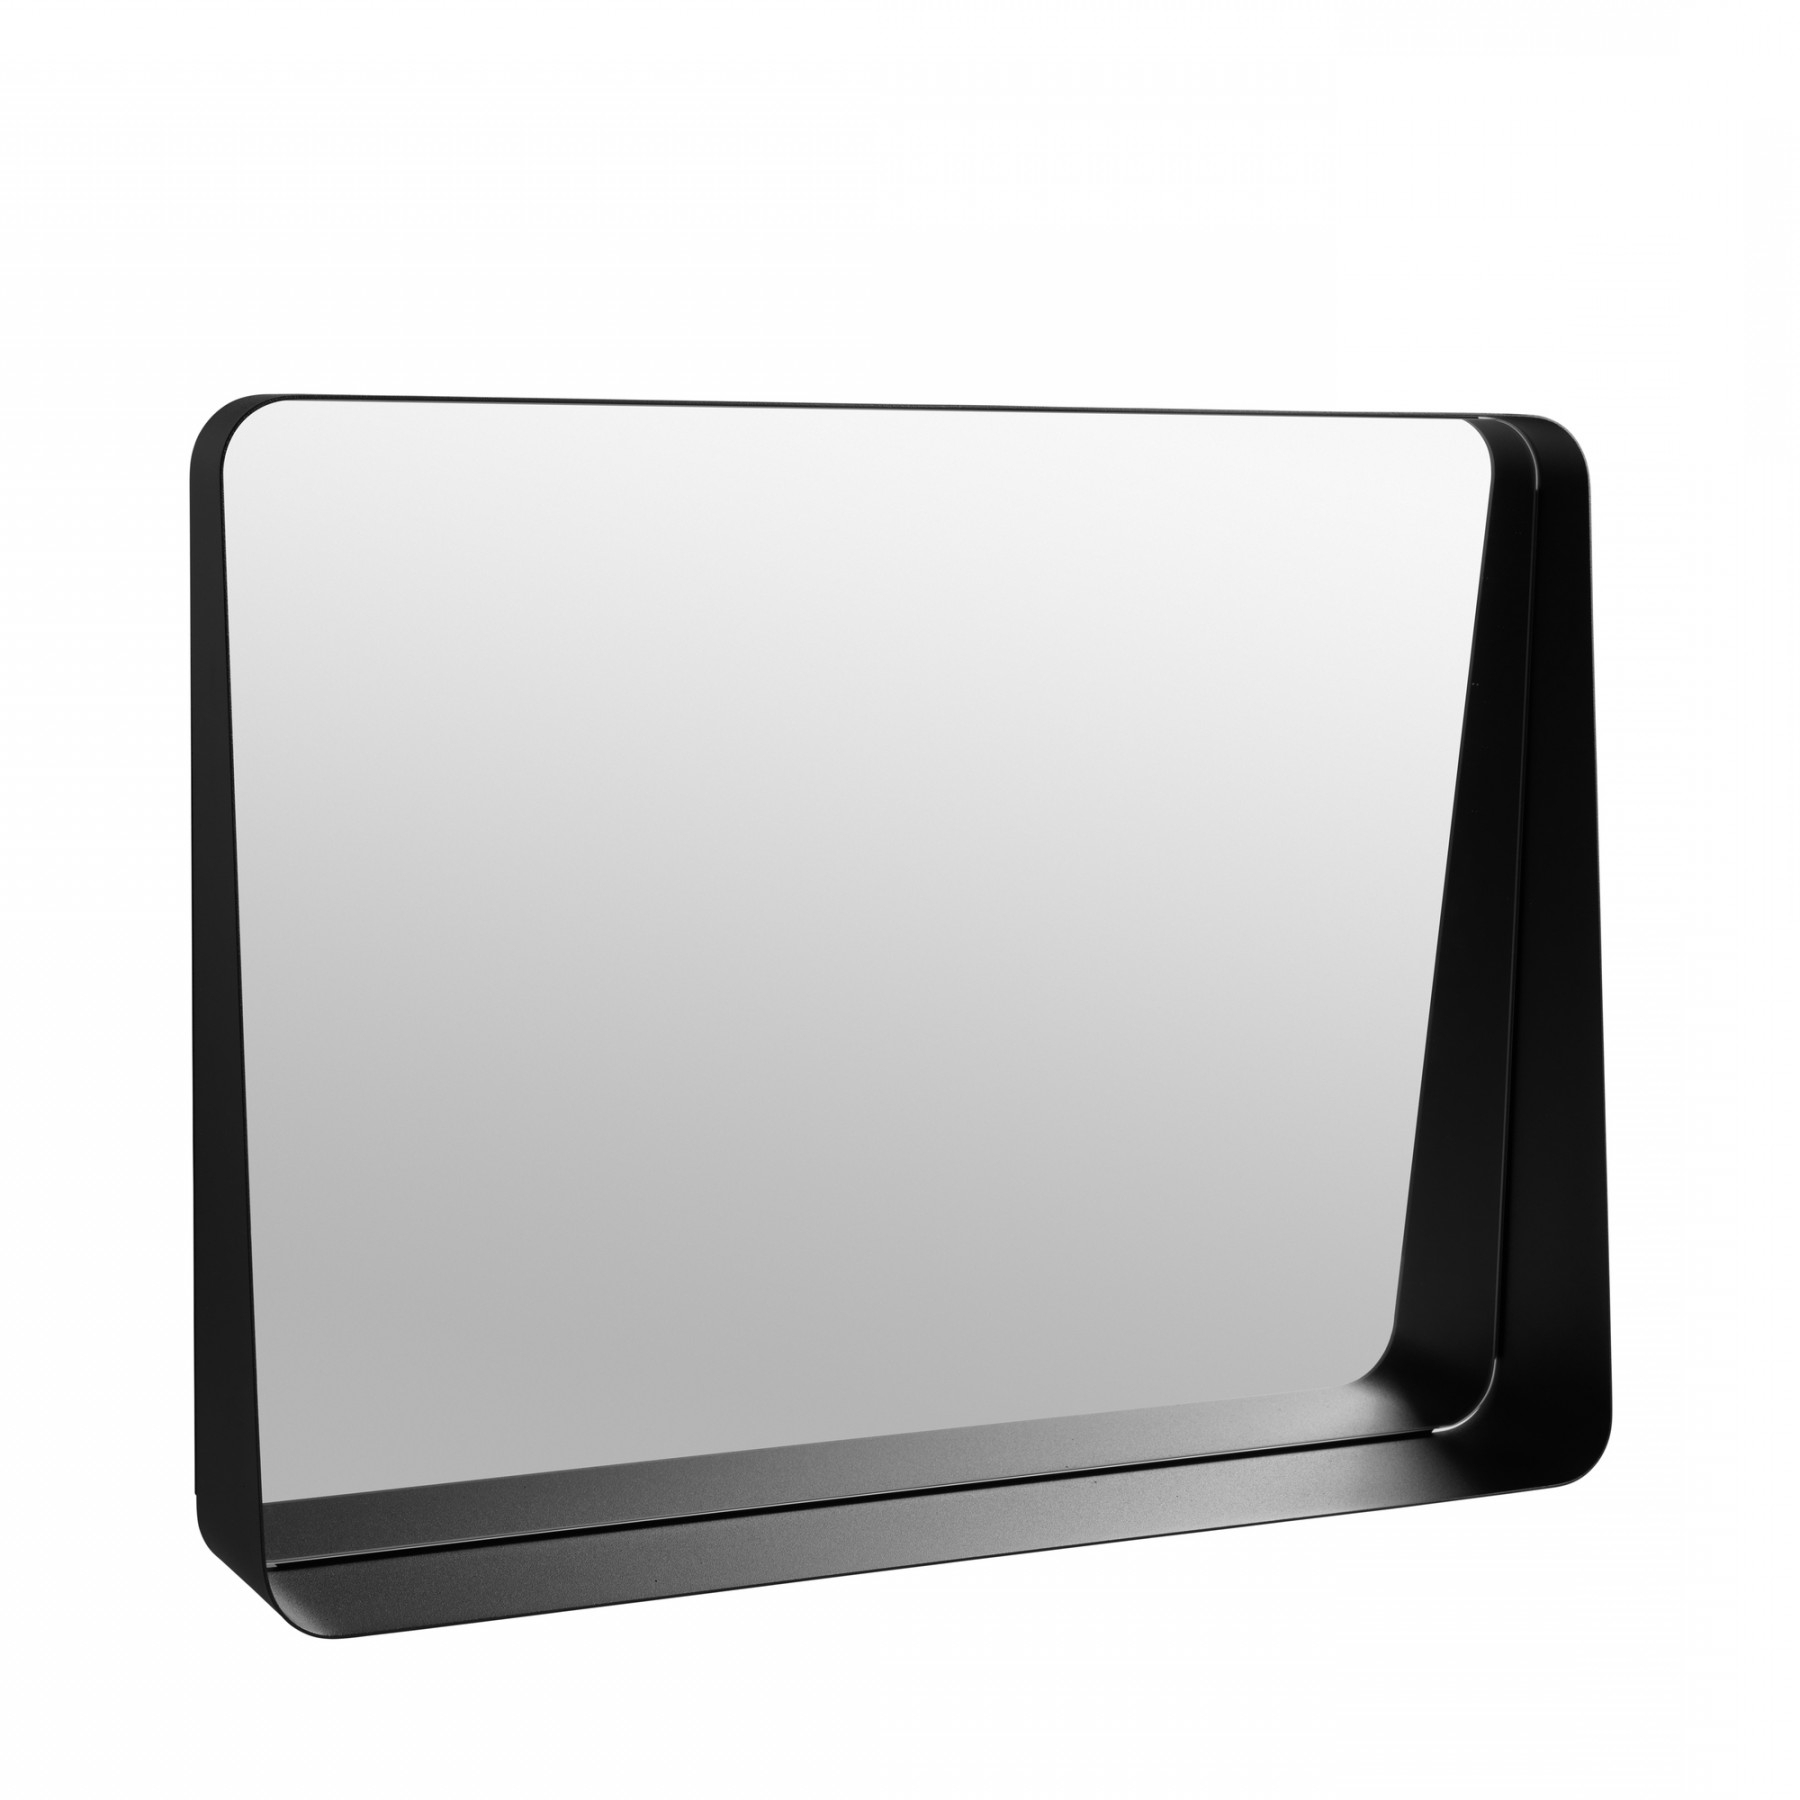 Arco Wall Mirror Horizontal Blomus Throughout Trendy Horizontal Wall Mirrors (View 1 of 20)